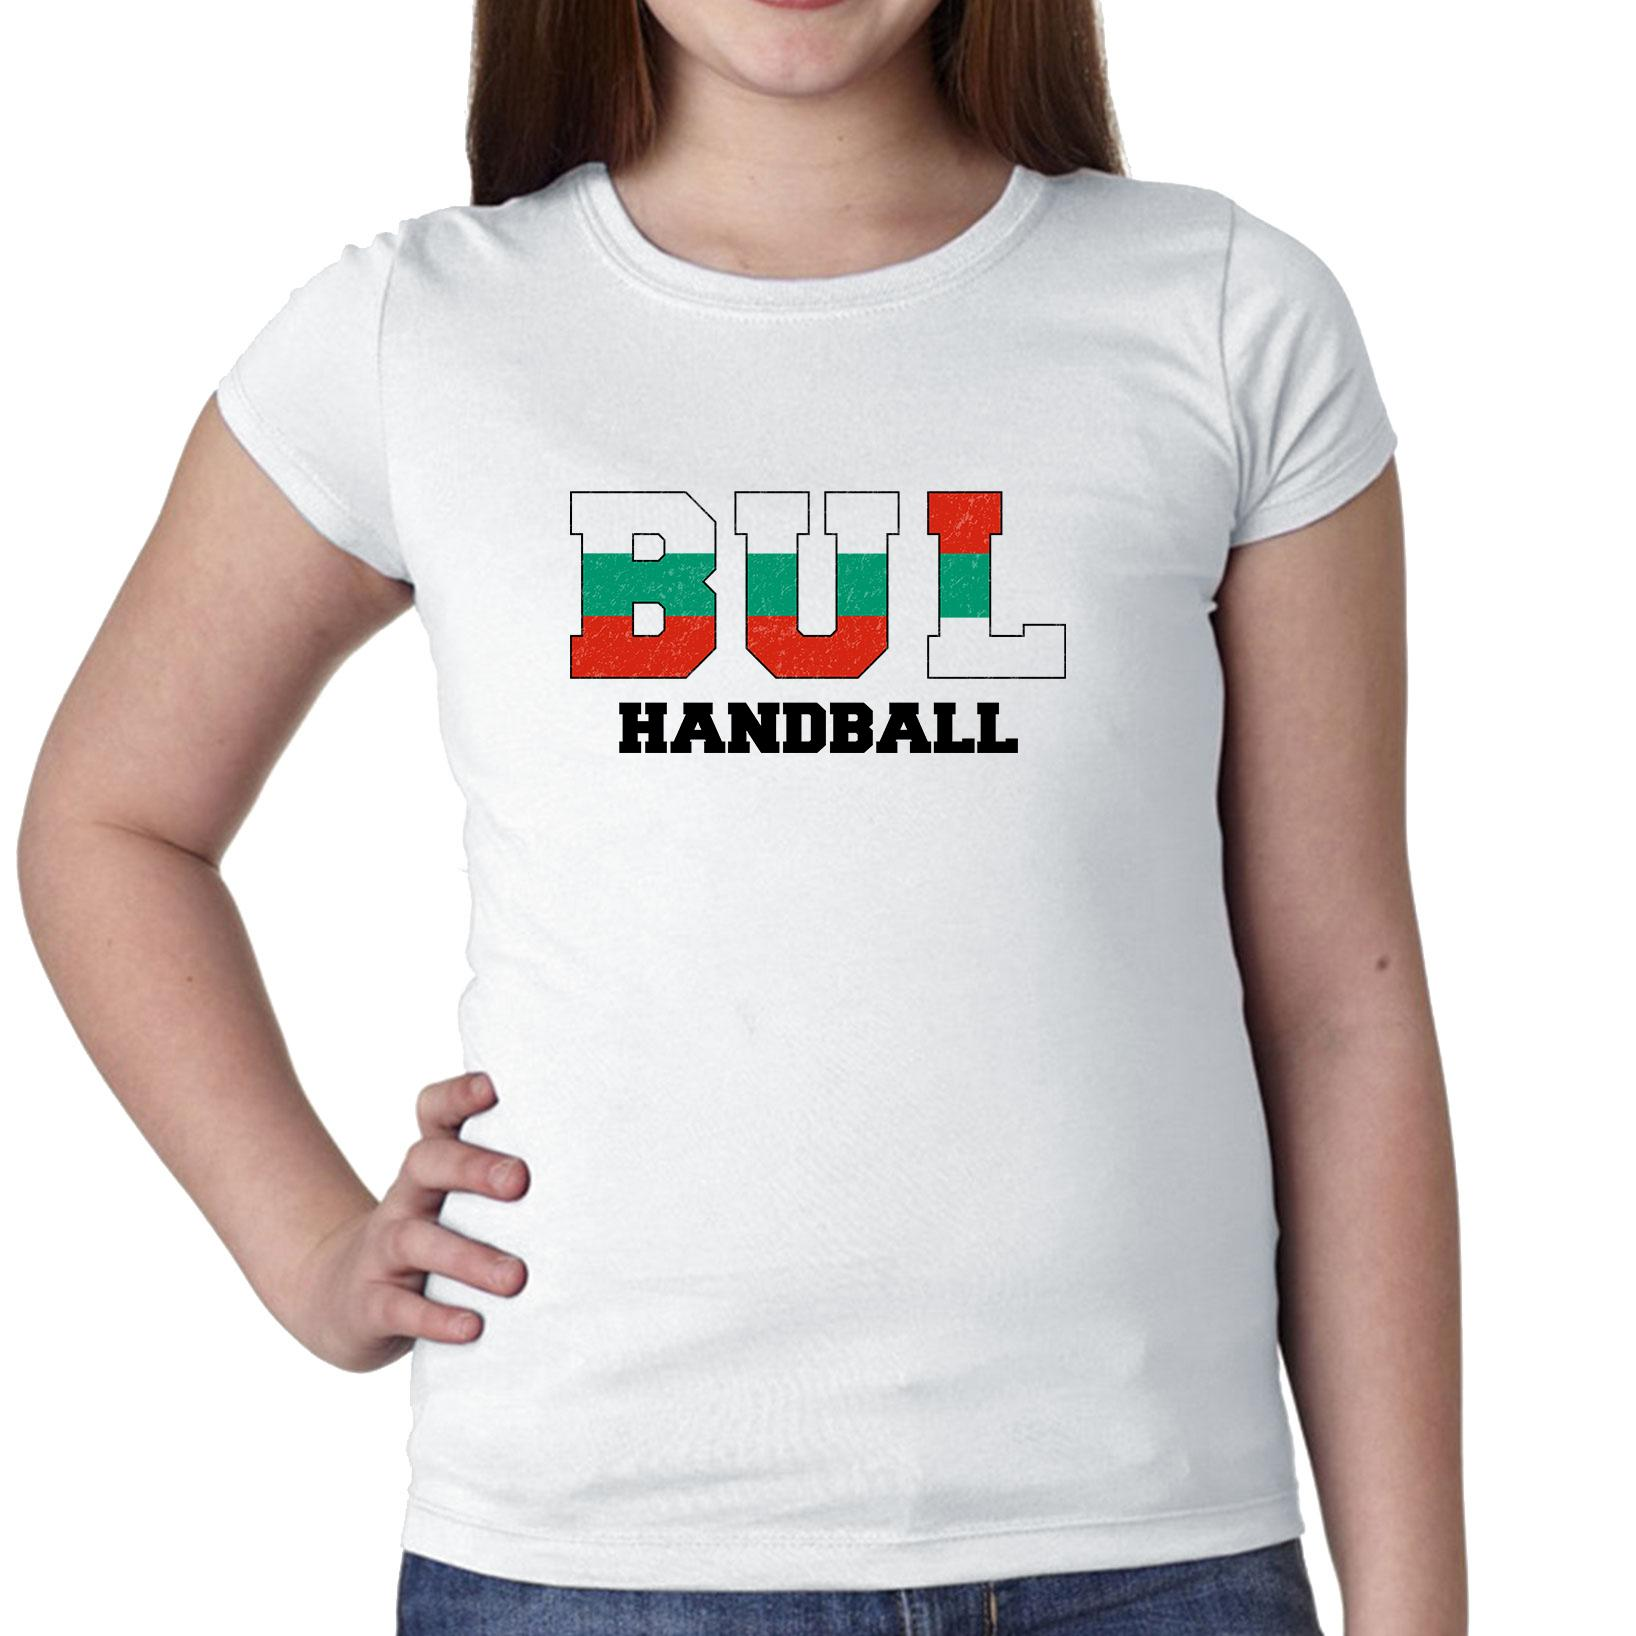 Bulgaria Handball Olympic Games Rio Flag Girl's Cotton Youth T-Shirt by Hollywood Thread